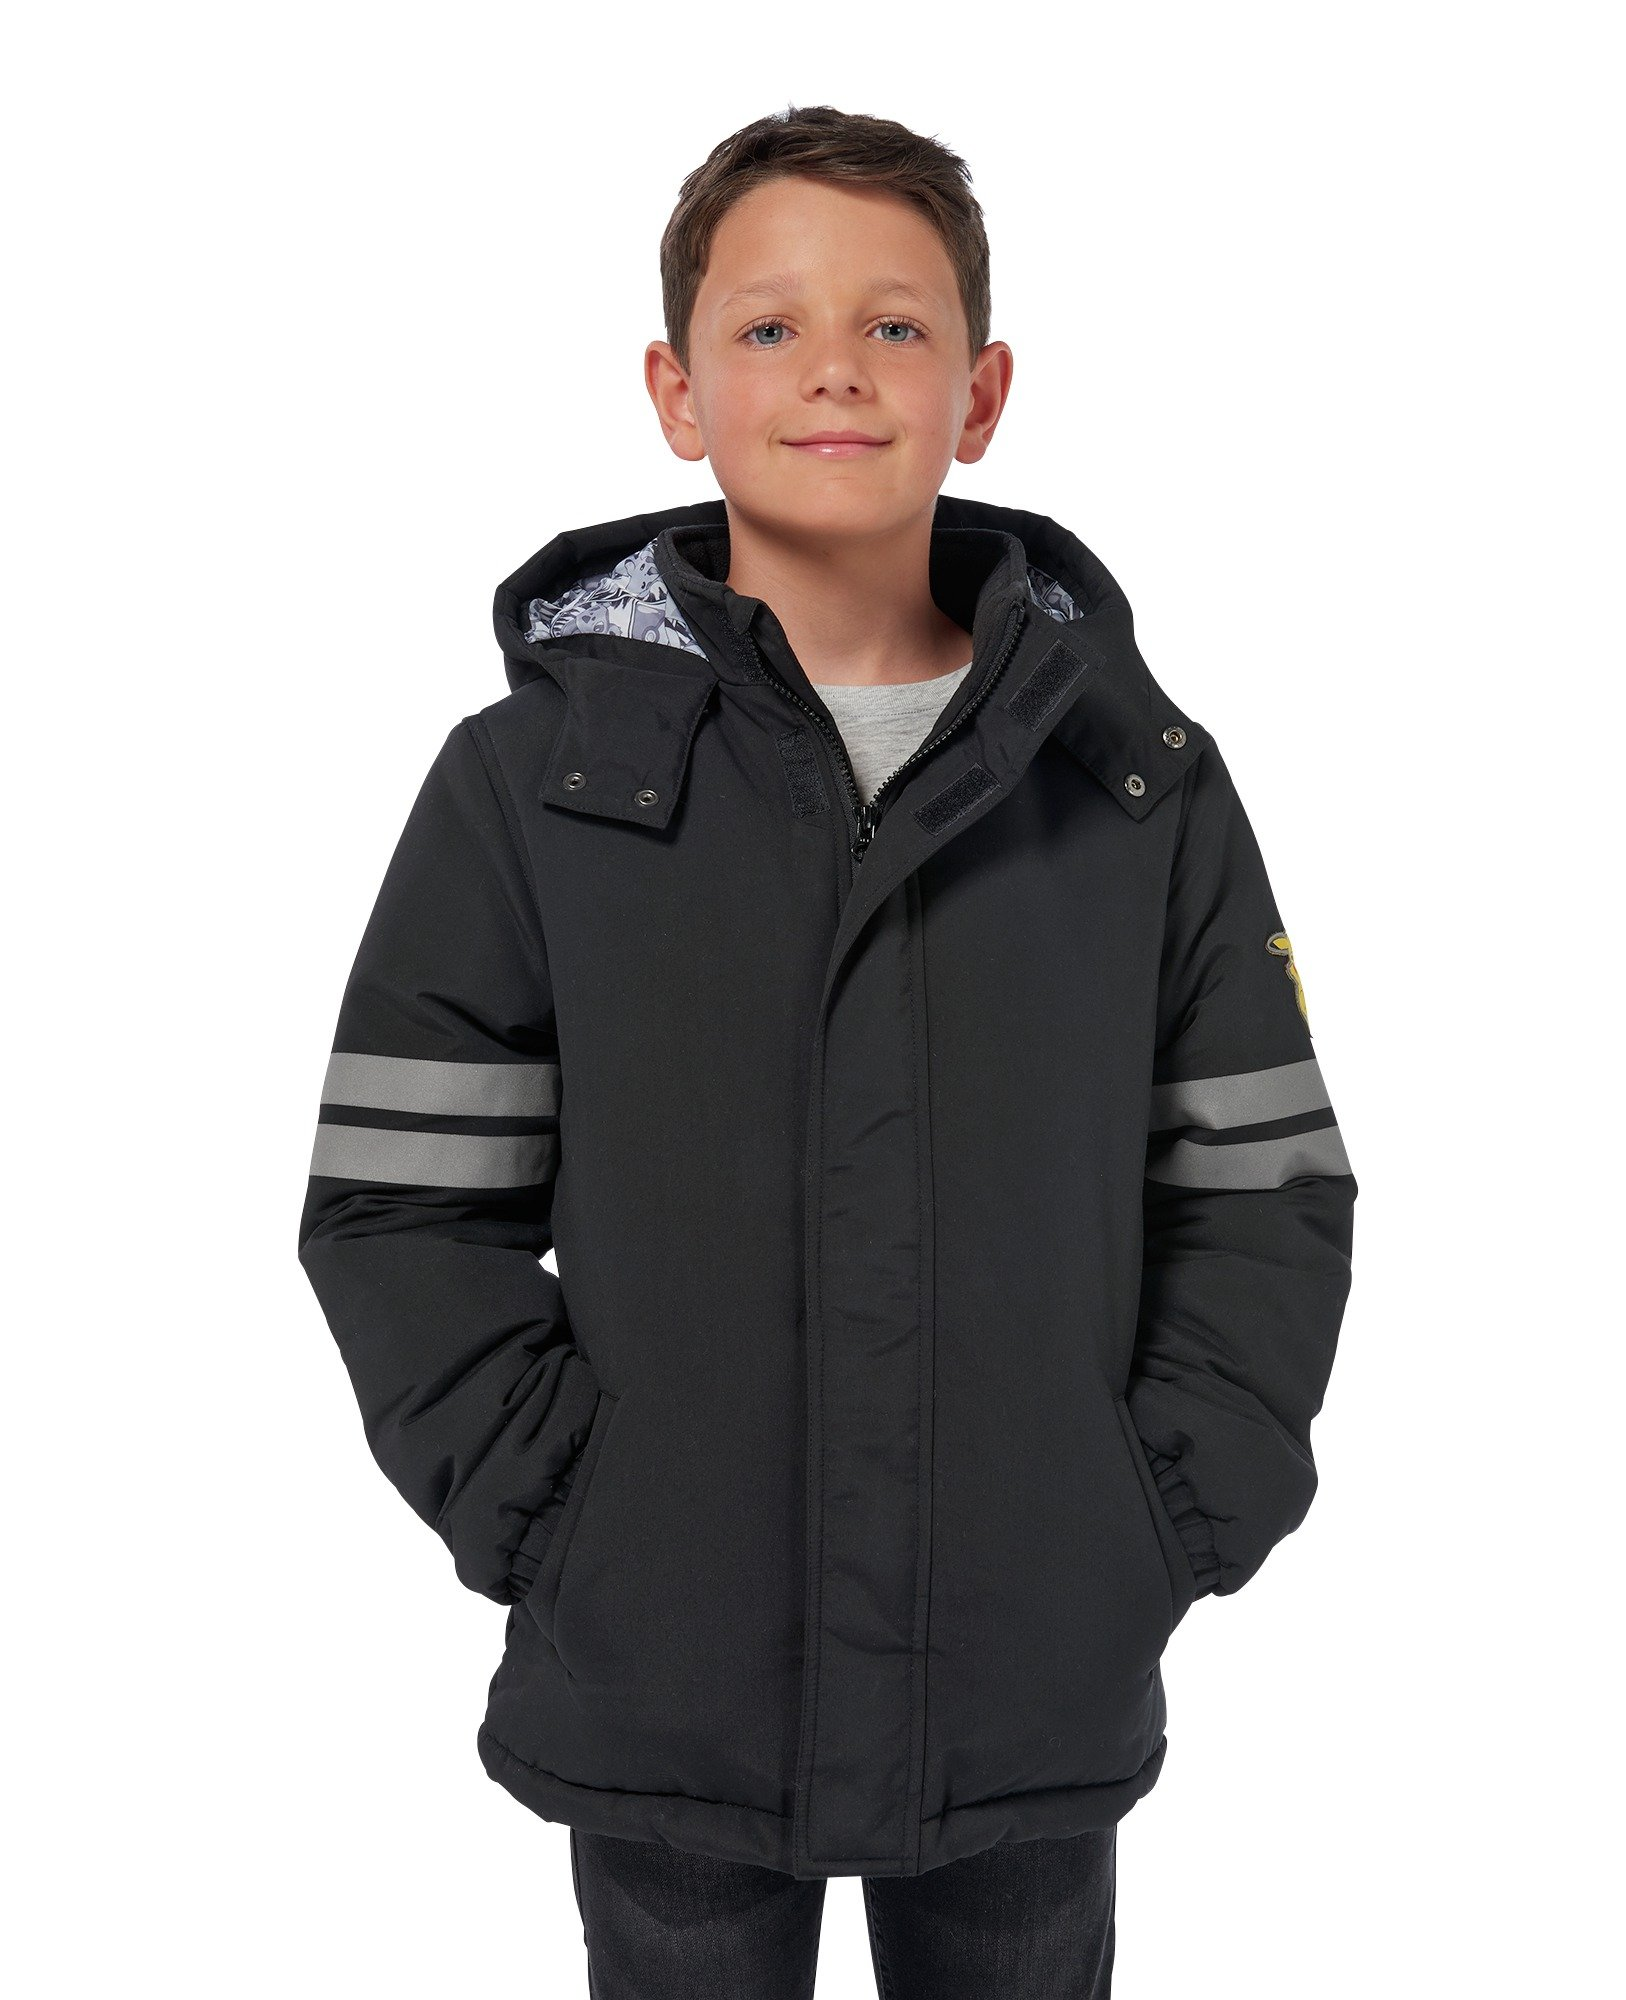 Image of Pokemon Black Jacket - 9-10 Years